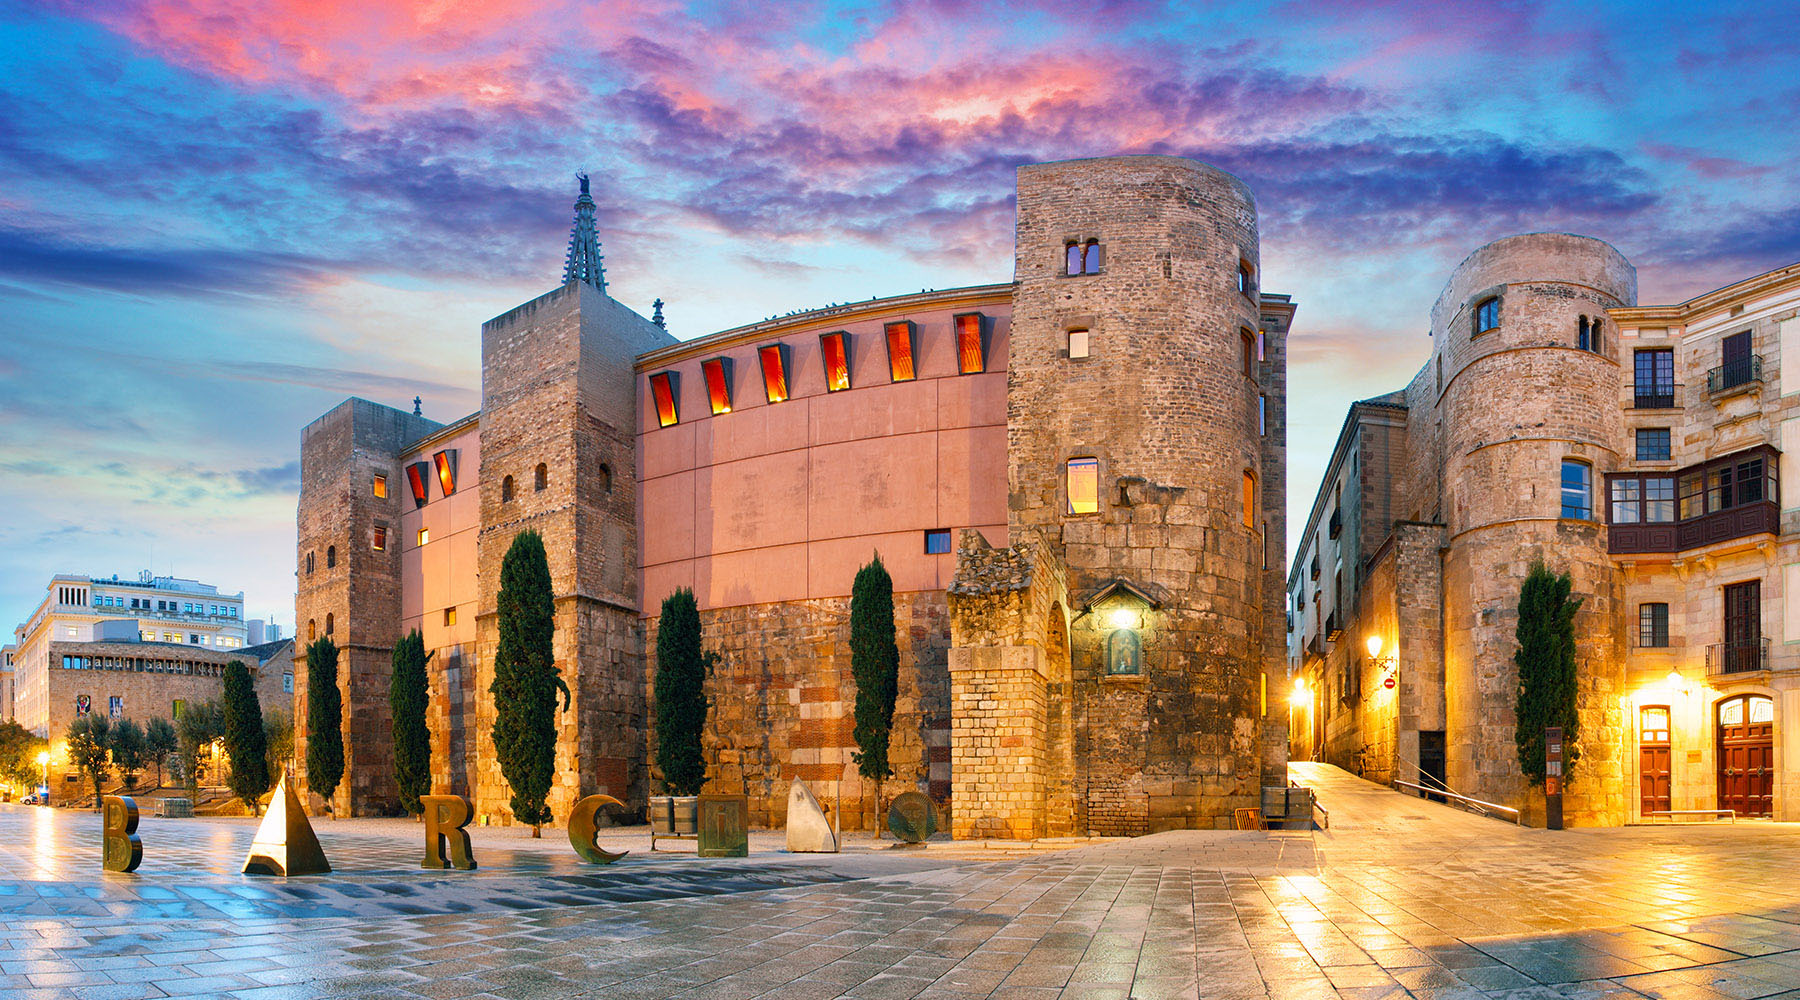 7 Night Spain Cruise Amp 3 Night Barcelona Stay 06 Apr 19